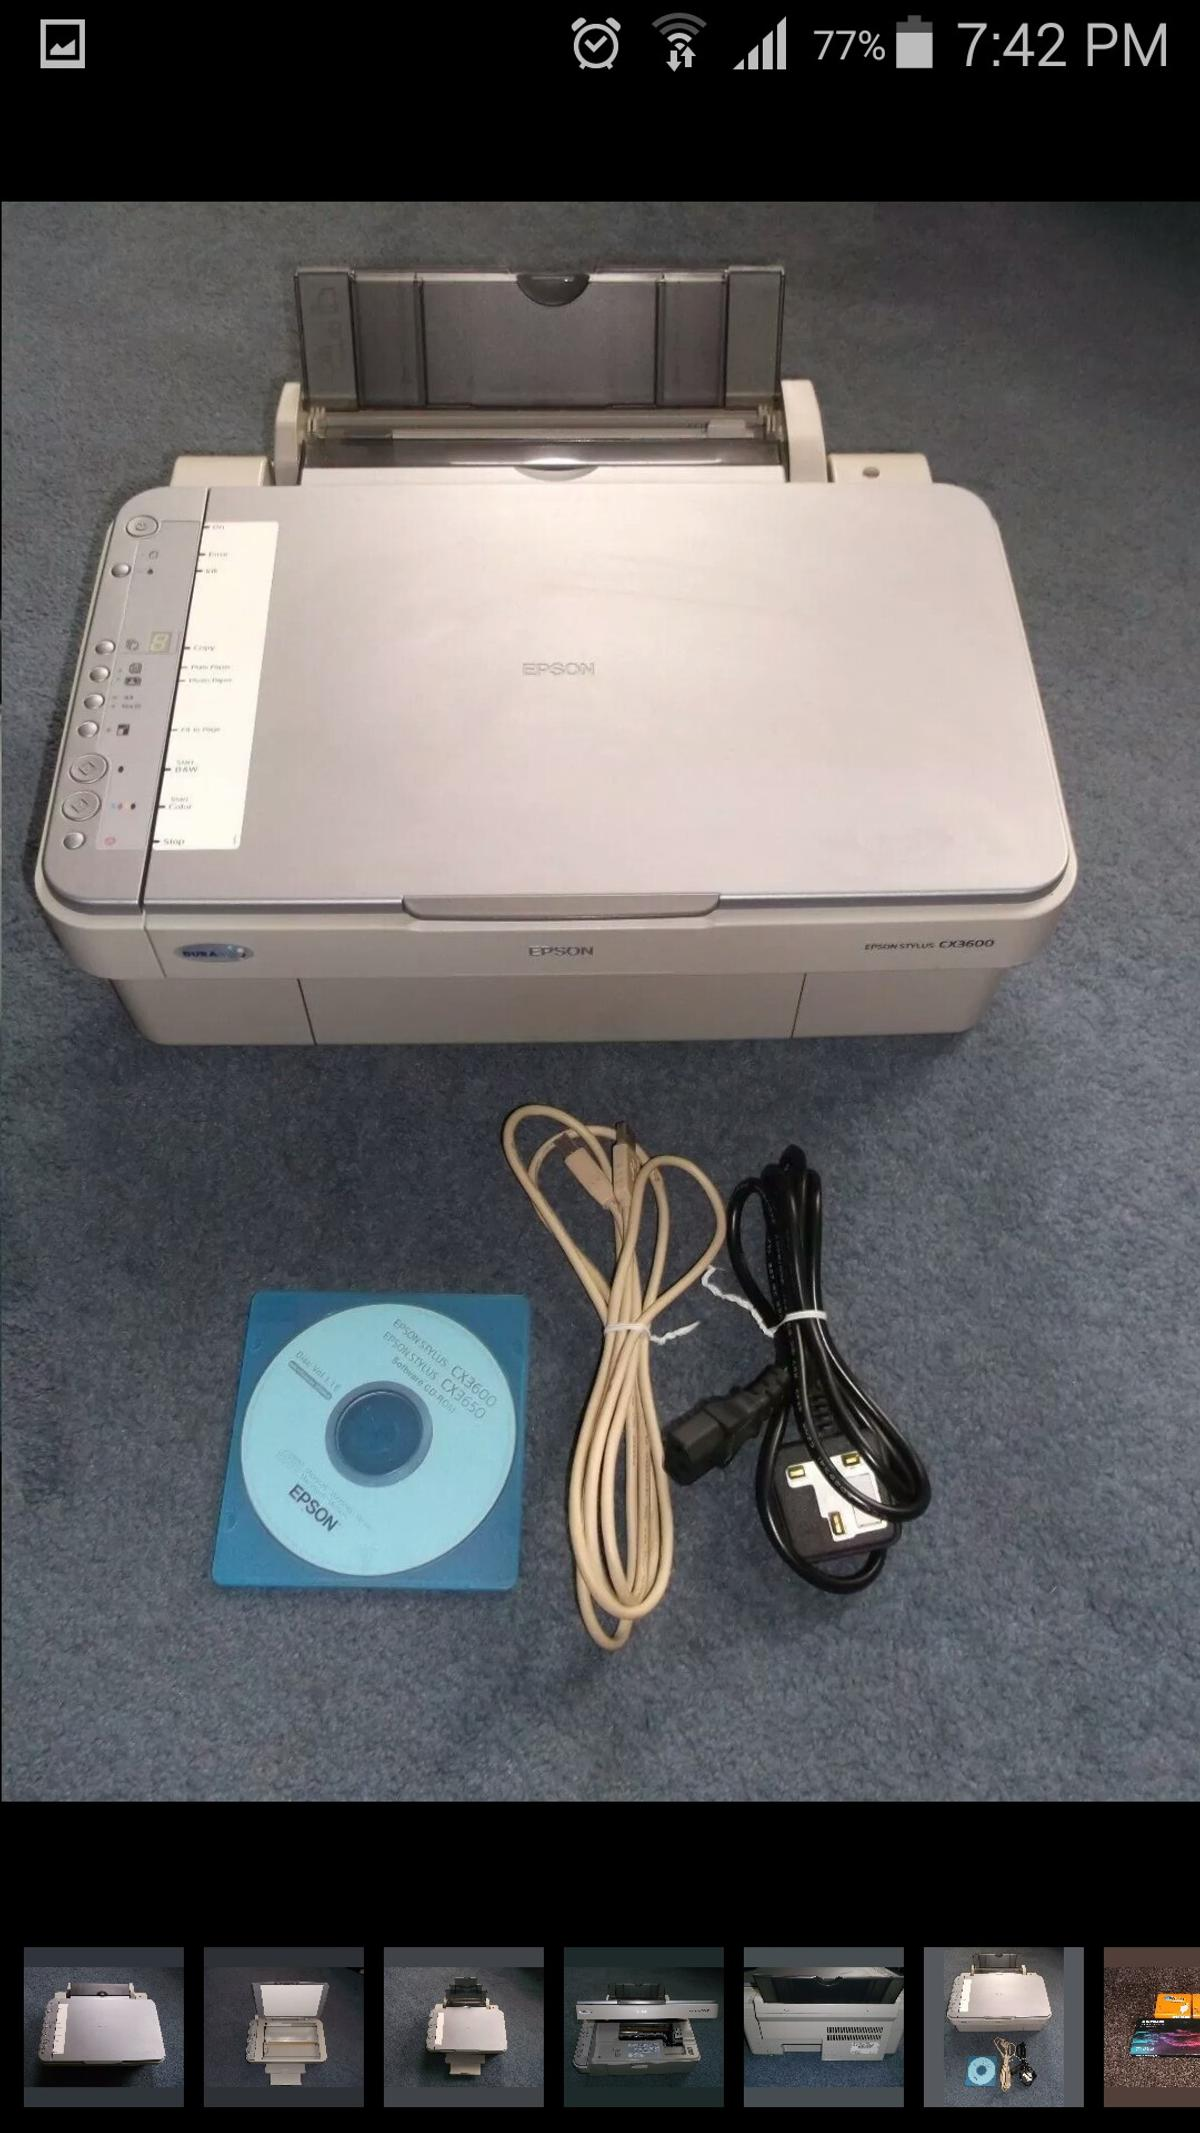 EPSON CX3600 SCANNER DRIVER FOR WINDOWS